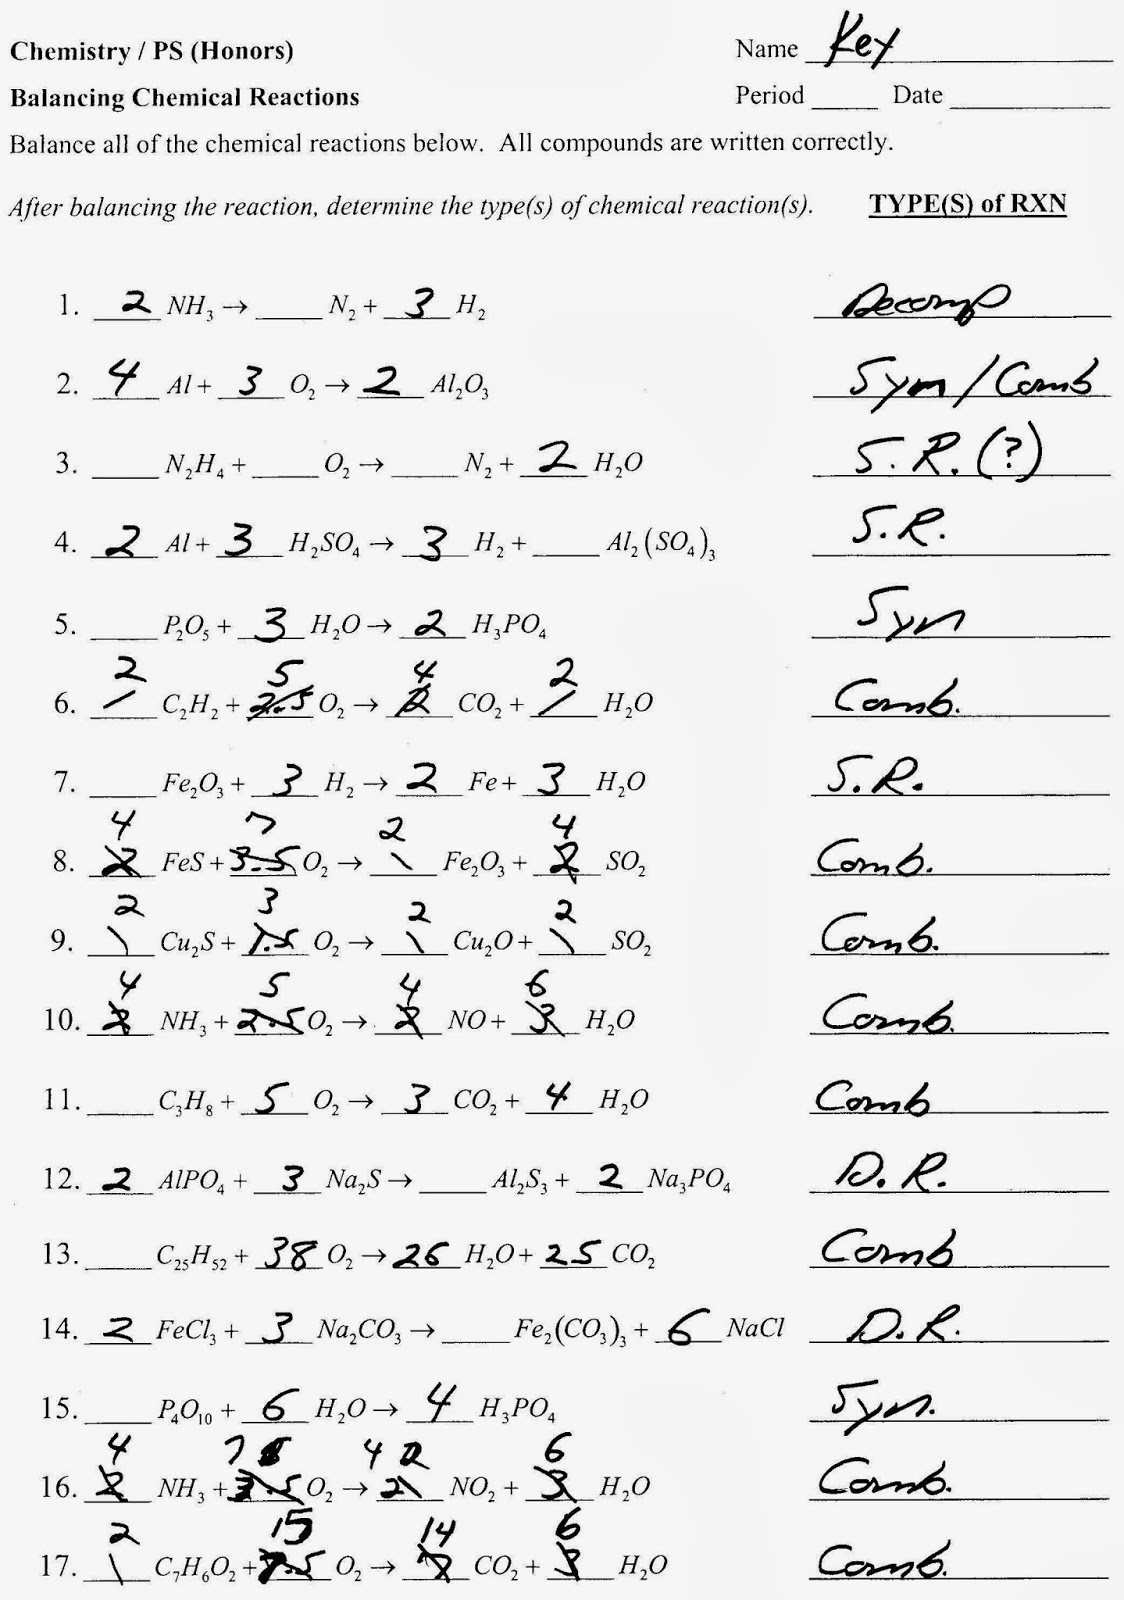 Aldiablosus  Seductive Balancing Chemical Equations Worksheets Balancing Chemical  With Exquisite Balancing Chemical Equations Worksheet Answer Key On Chemistry Double With Adorable Subject Object Pronouns Worksheets Also Worksheets On Subtraction With Regrouping In Addition Reading Cvc Words Worksheets And Subtraction Worksheets Free Printable As Well As Letters And Sounds Phase  Worksheets Additionally Free Printable Grammar Worksheets For High School From Letstalkhiphopus With Aldiablosus  Exquisite Balancing Chemical Equations Worksheets Balancing Chemical  With Adorable Balancing Chemical Equations Worksheet Answer Key On Chemistry Double And Seductive Subject Object Pronouns Worksheets Also Worksheets On Subtraction With Regrouping In Addition Reading Cvc Words Worksheets From Letstalkhiphopus